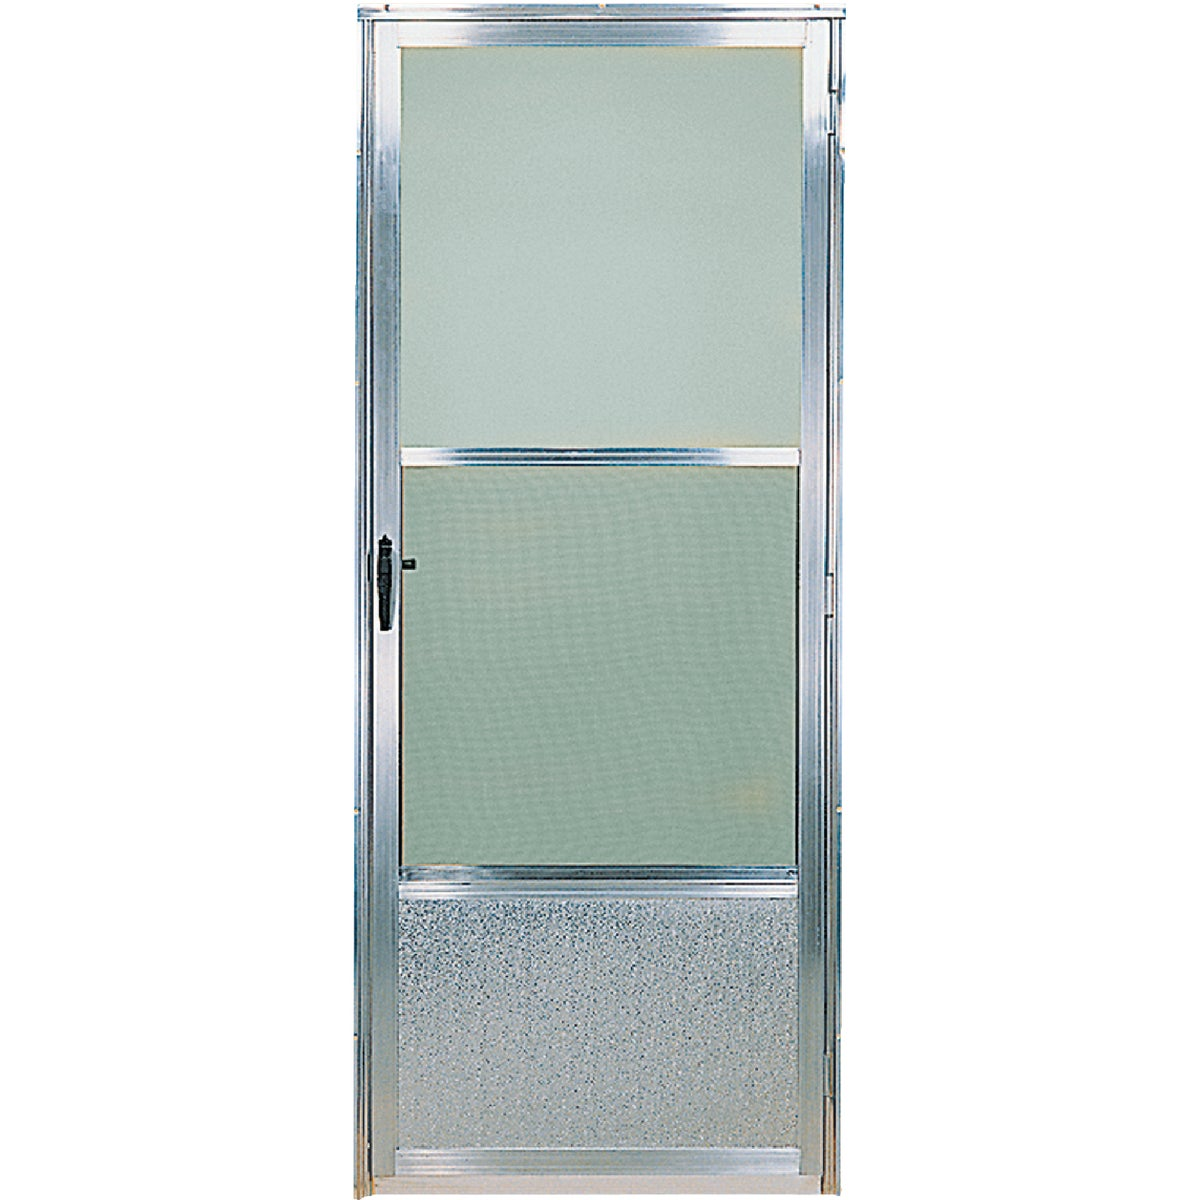 161 2668 RH MILL DOOR - F25751 by Croft Llc